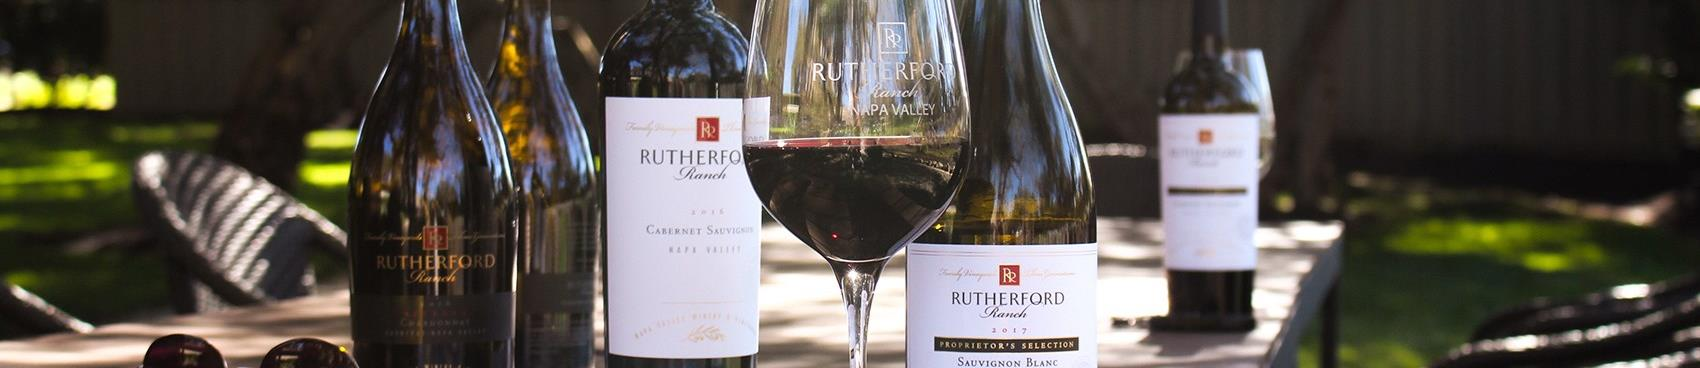 A image of Rutherford Ranch Winery